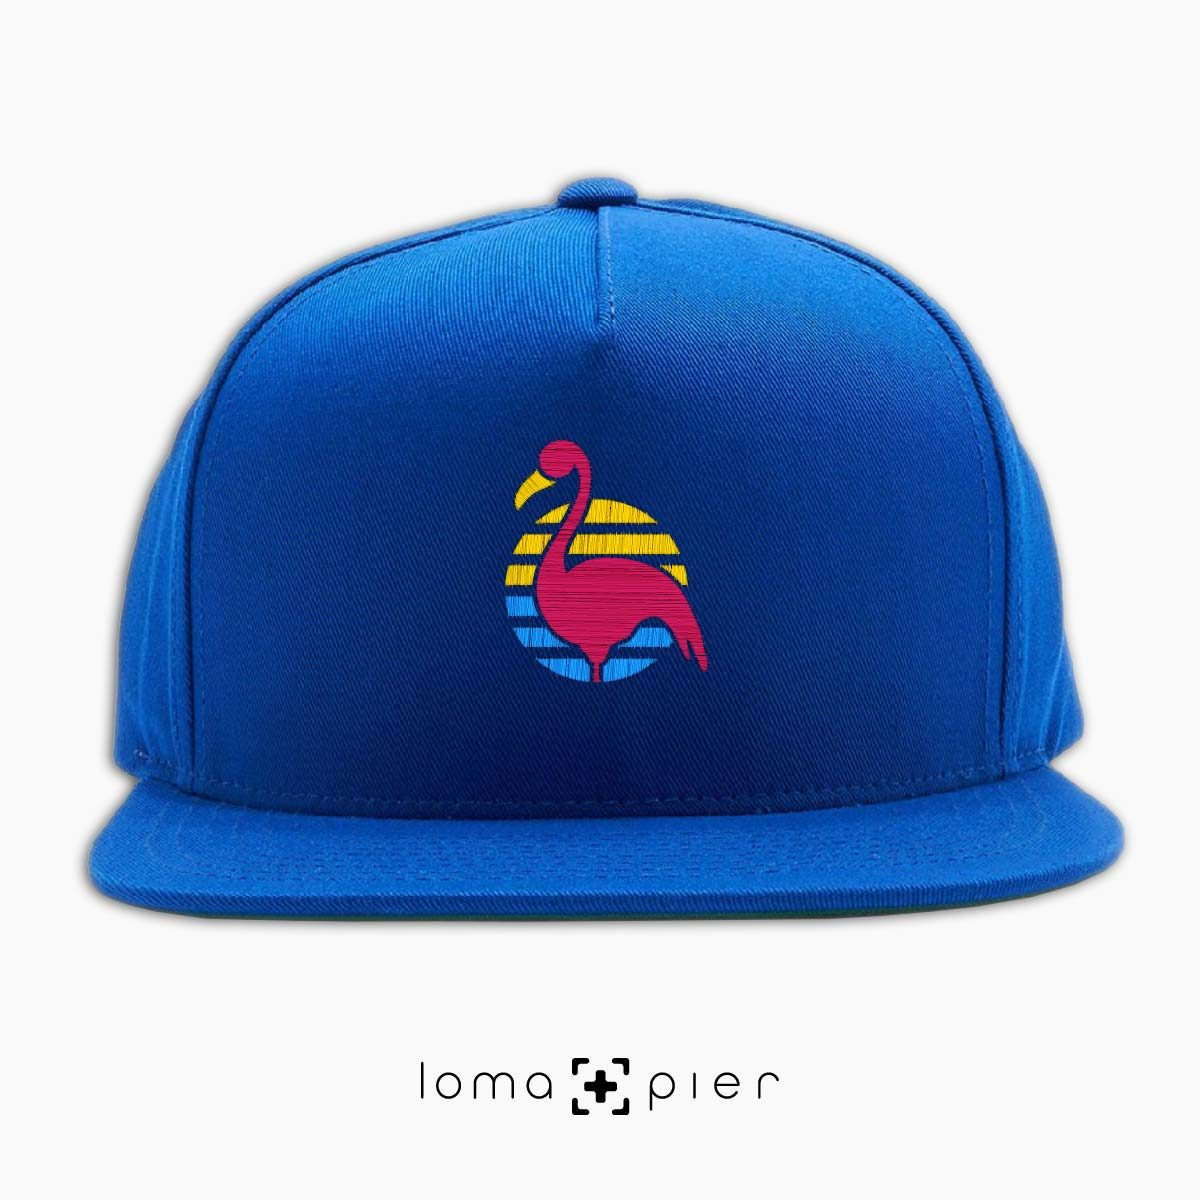 FLAMINGO icon embroidered on a royal blue classic snapback hat by loma+pier hat store